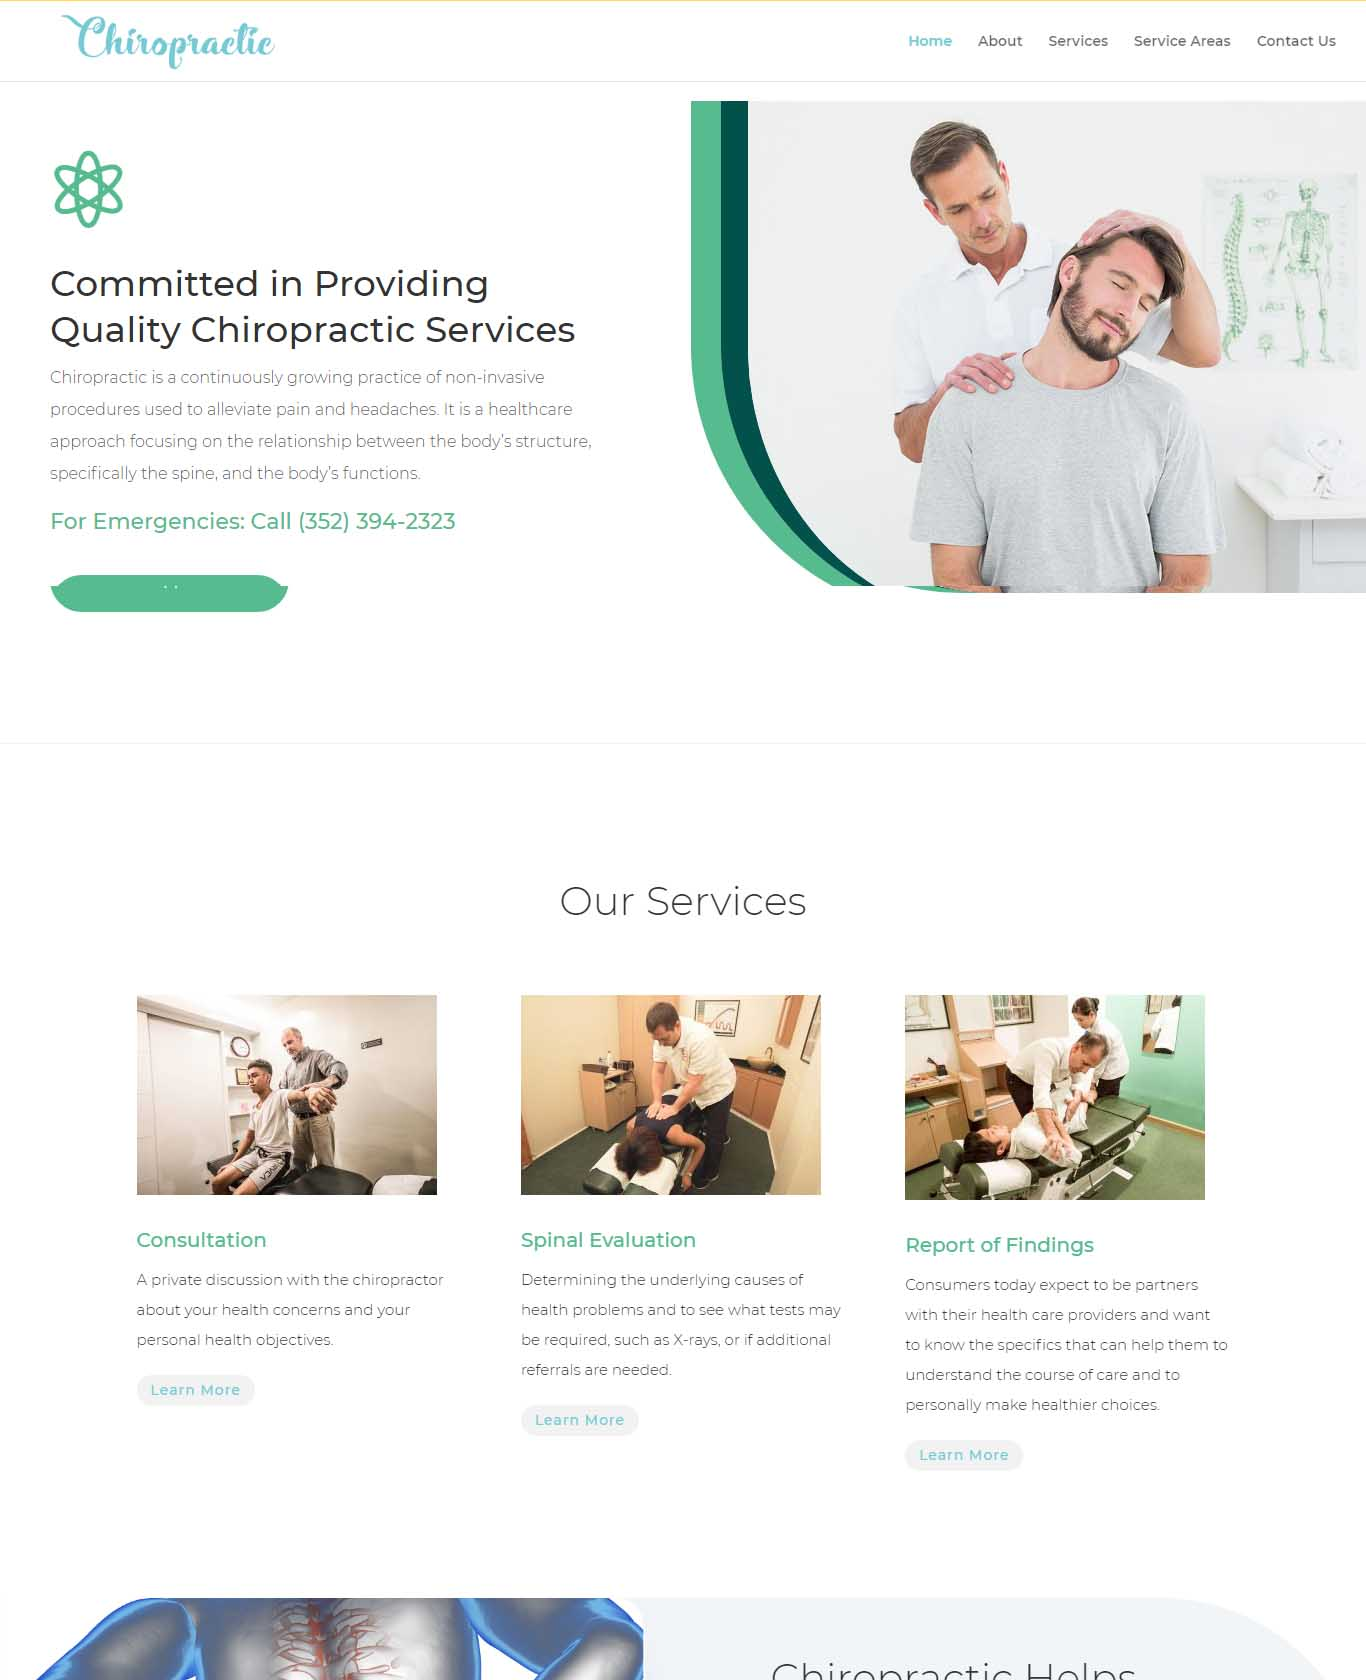 Chiropractic Services Website